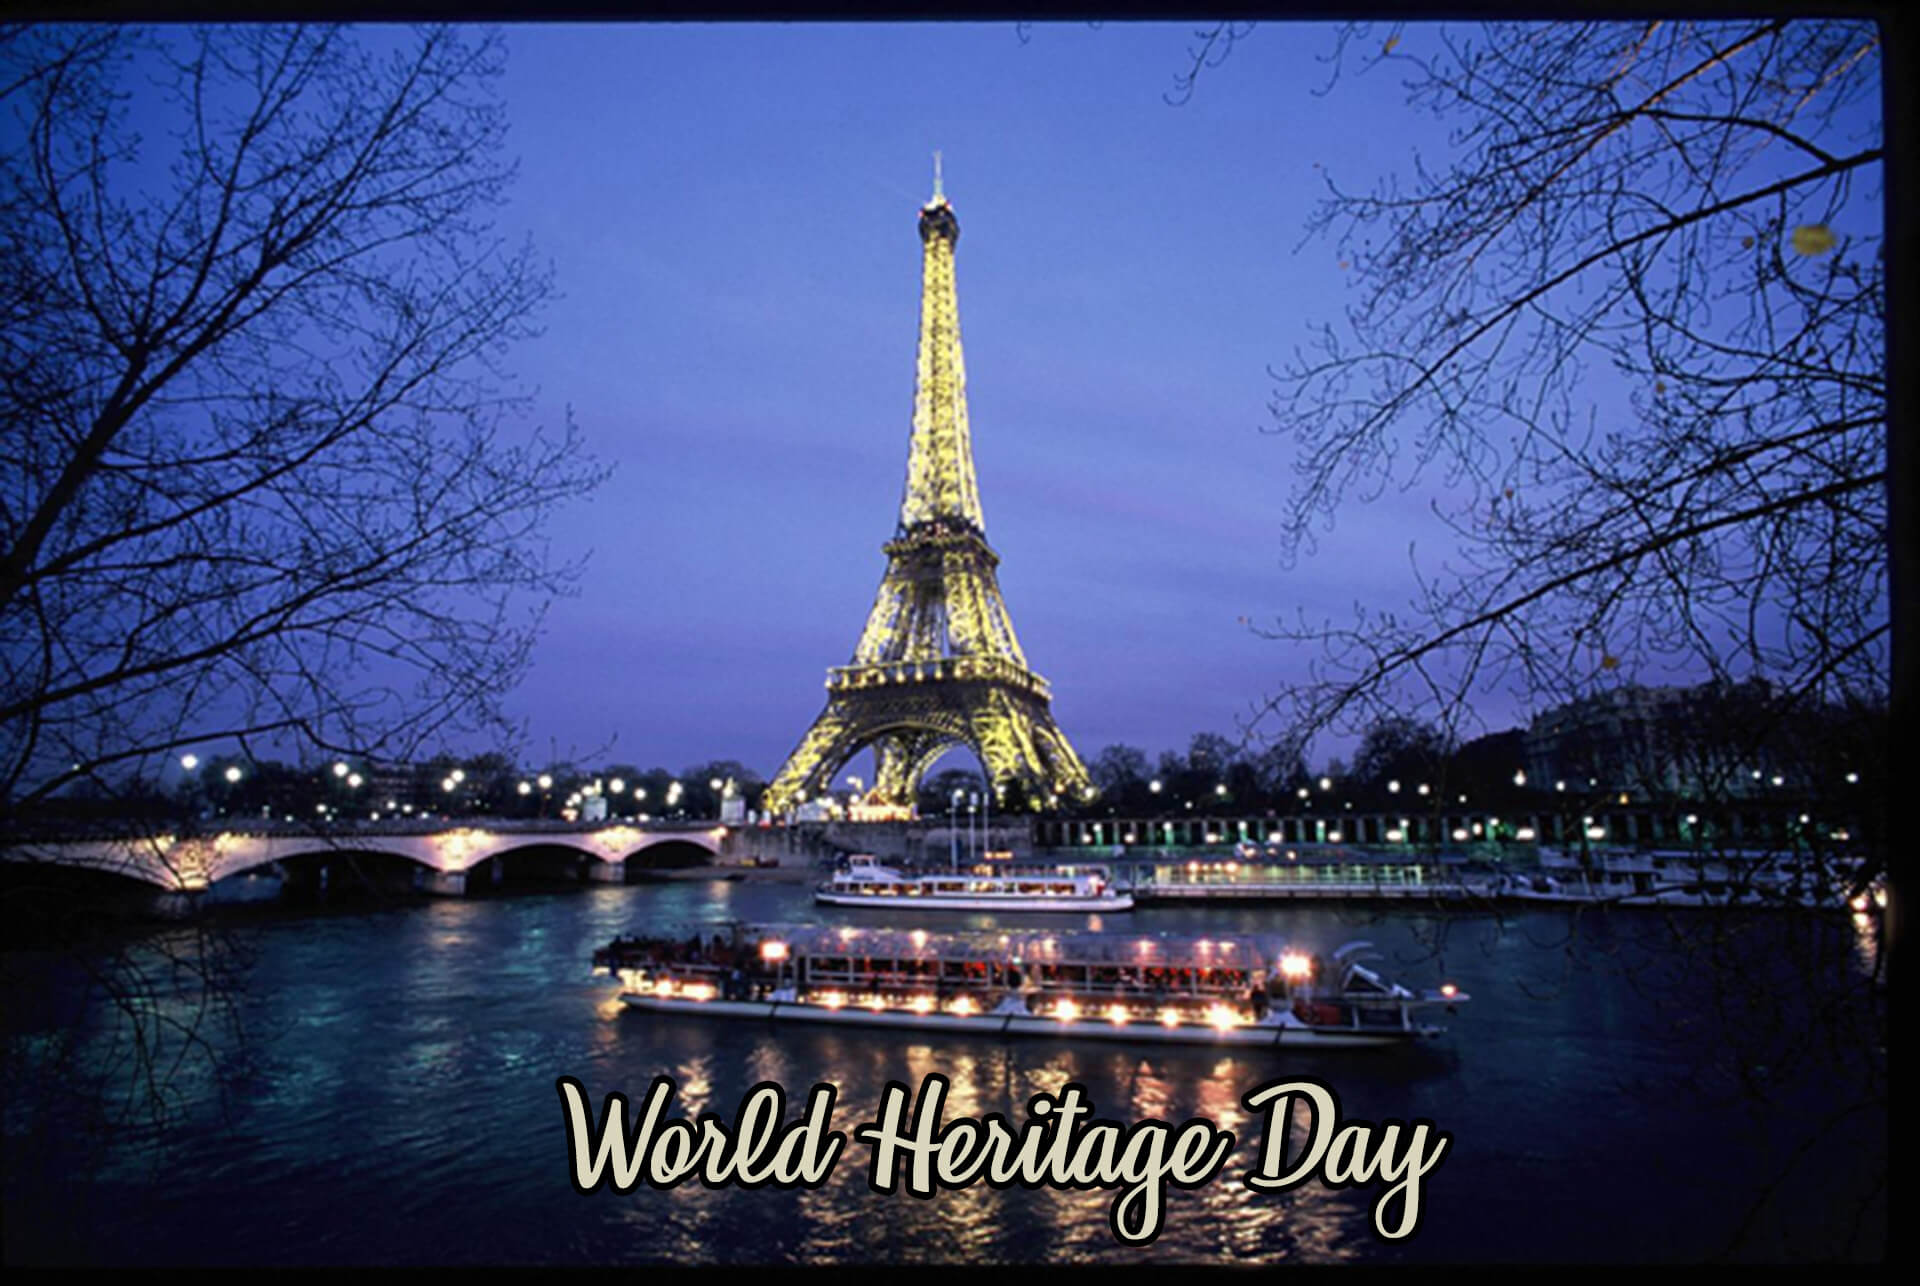 world heritage day monuments 7 wonders eiffel tower london paris wallpaper